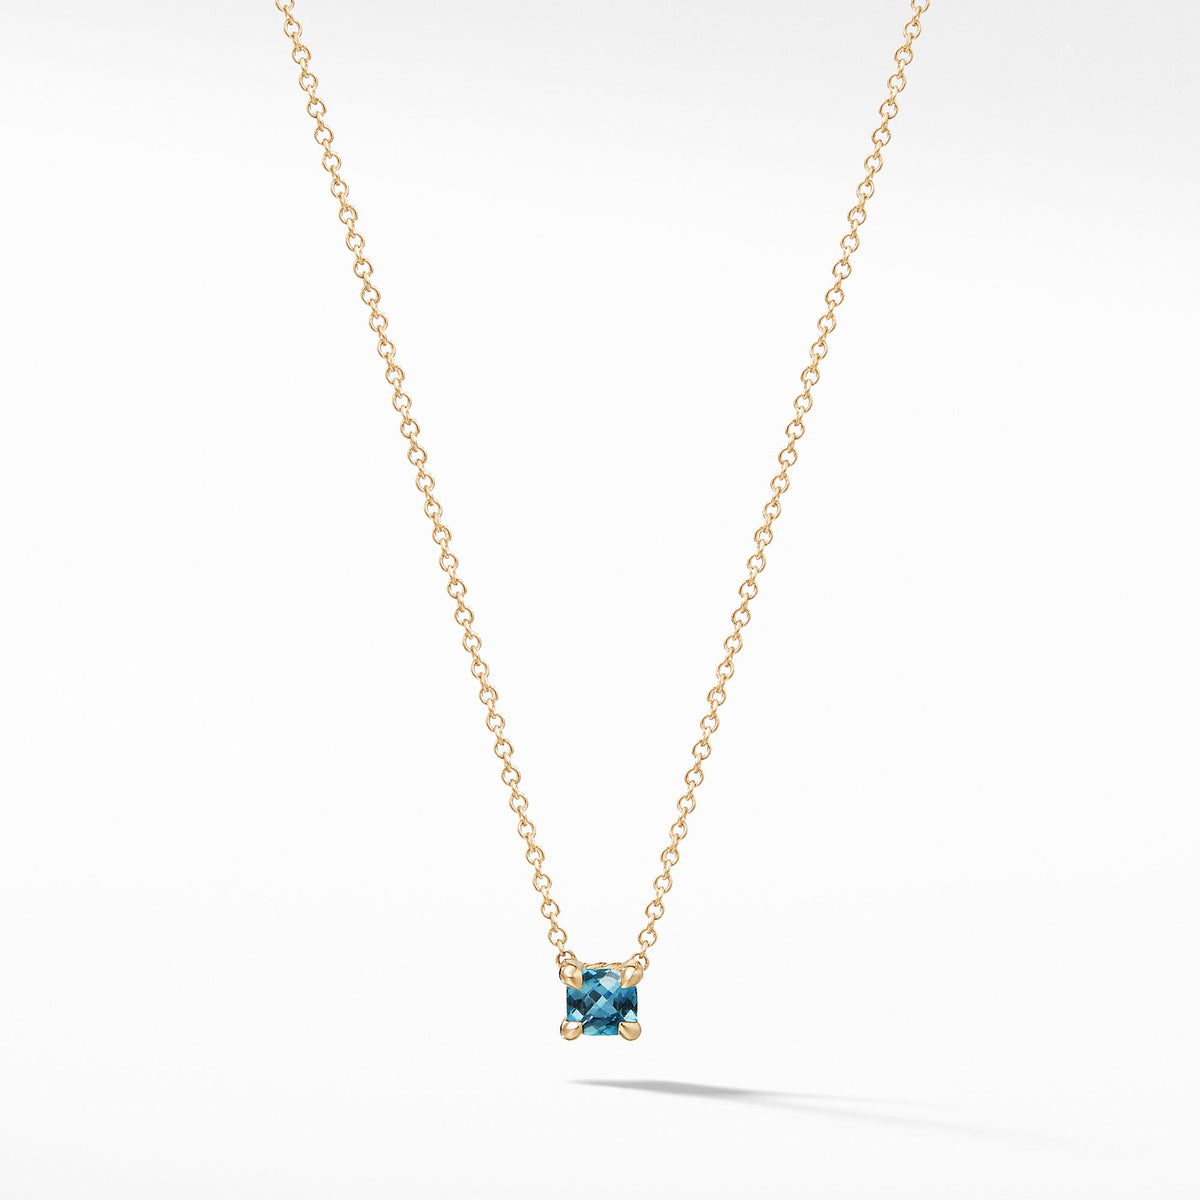 Chatelaine Kids Necklace with Hampton Blue Topaz in 18K Gold, 4mm